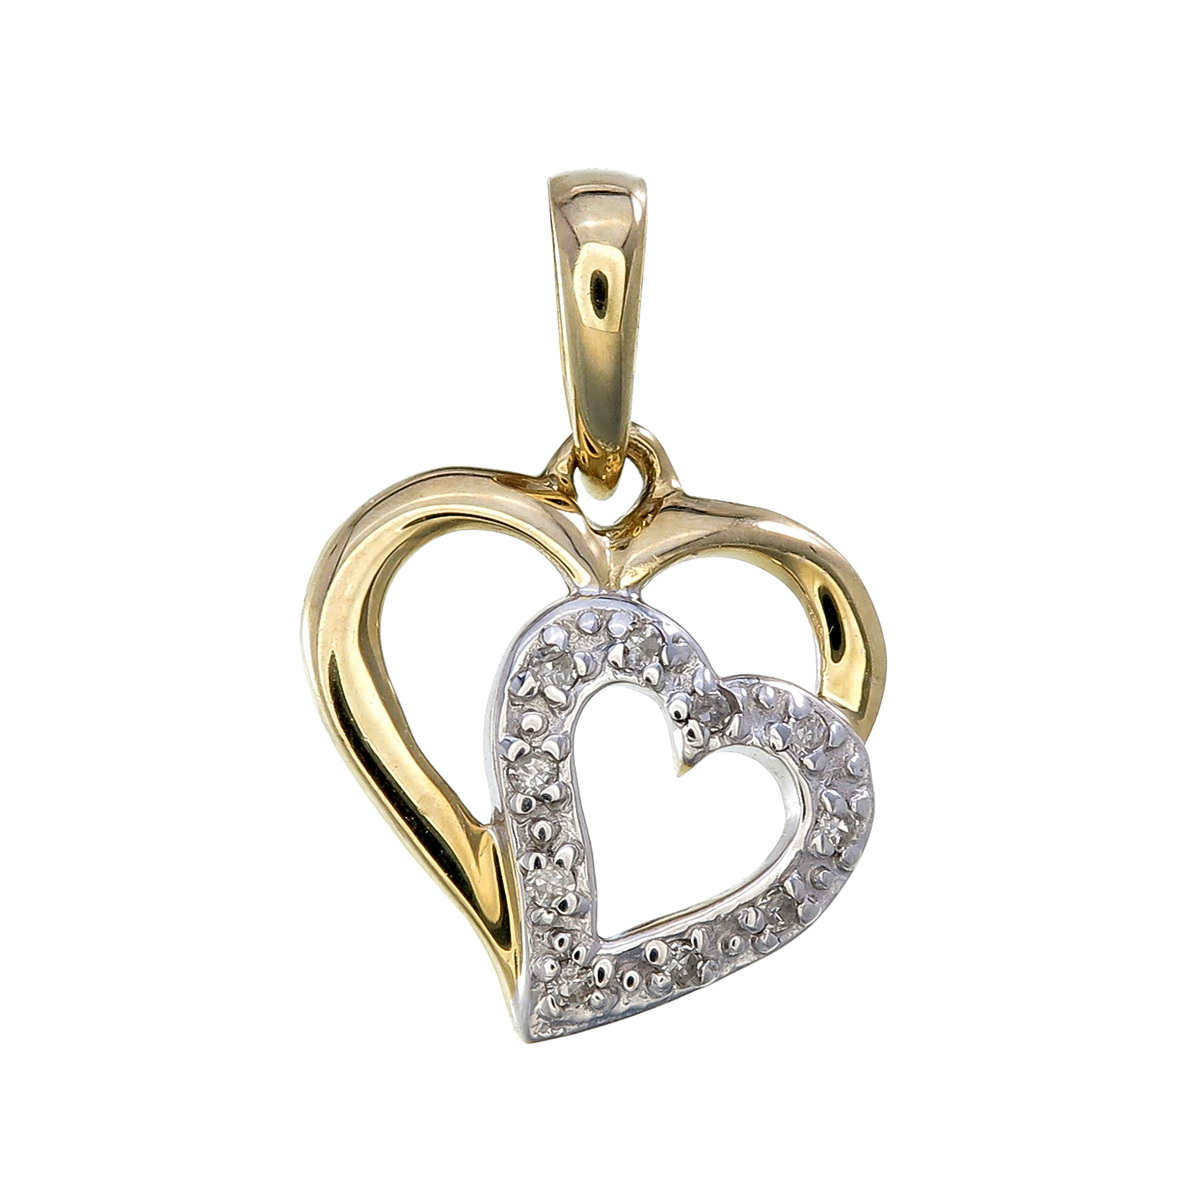 Heart pendant set with diamonds 0.03 Carats T.W. - in 10K yellow gold